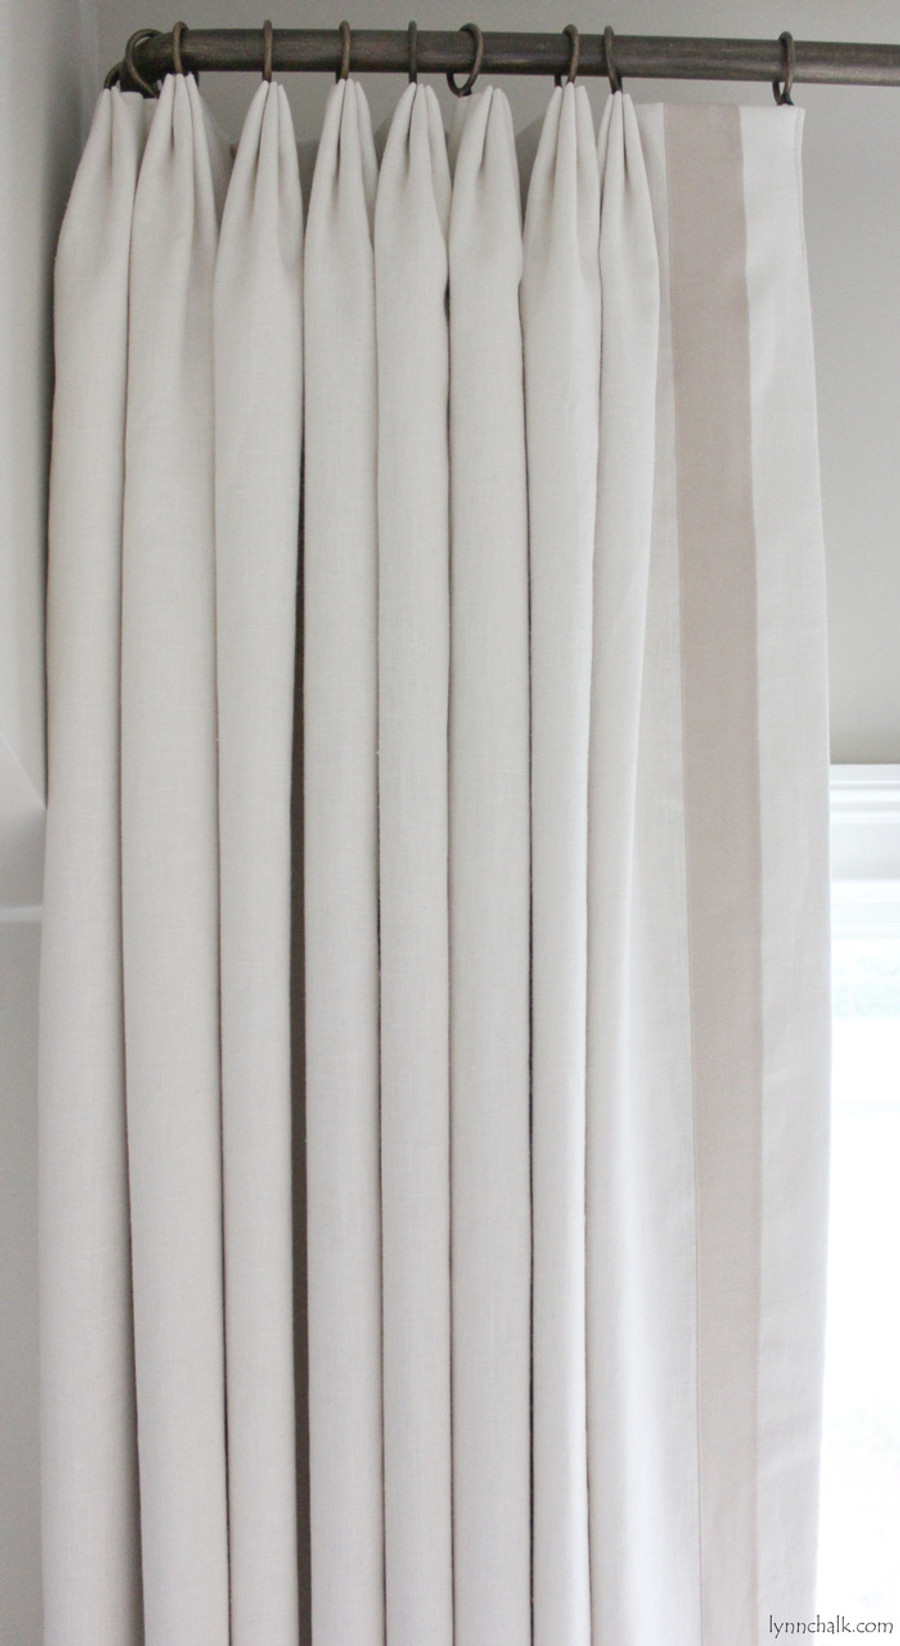 Custom Euro Pleated Drapes in Kravet Dublin Linen with Samuel & Sons Grosgrain Trim Sand